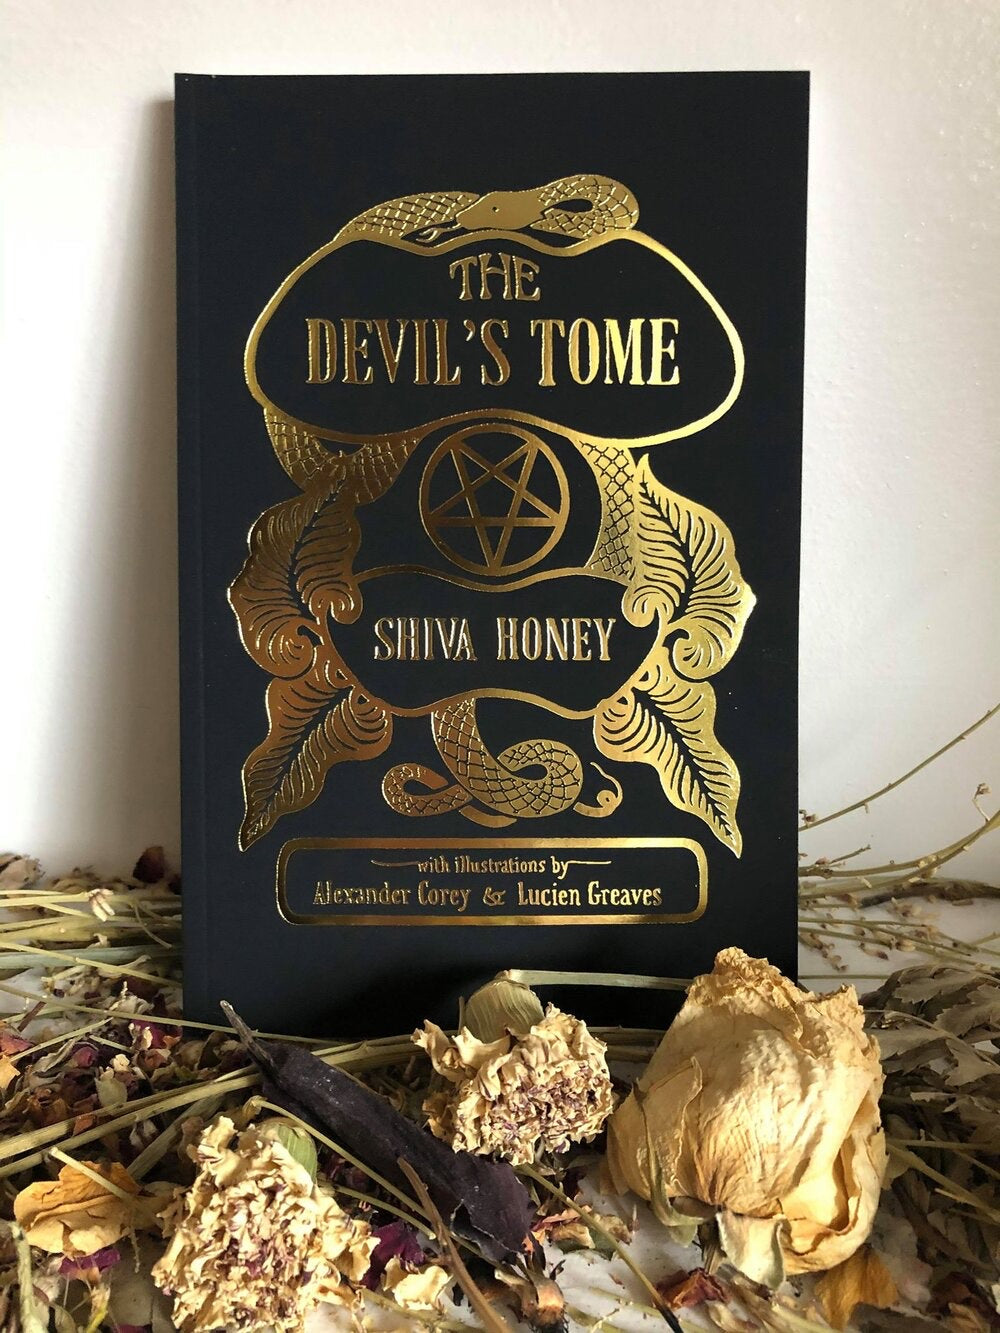 The Devil's Tome: A Book of Modern Satanic Ritual by Shiva Honey, Signed First Edition Book